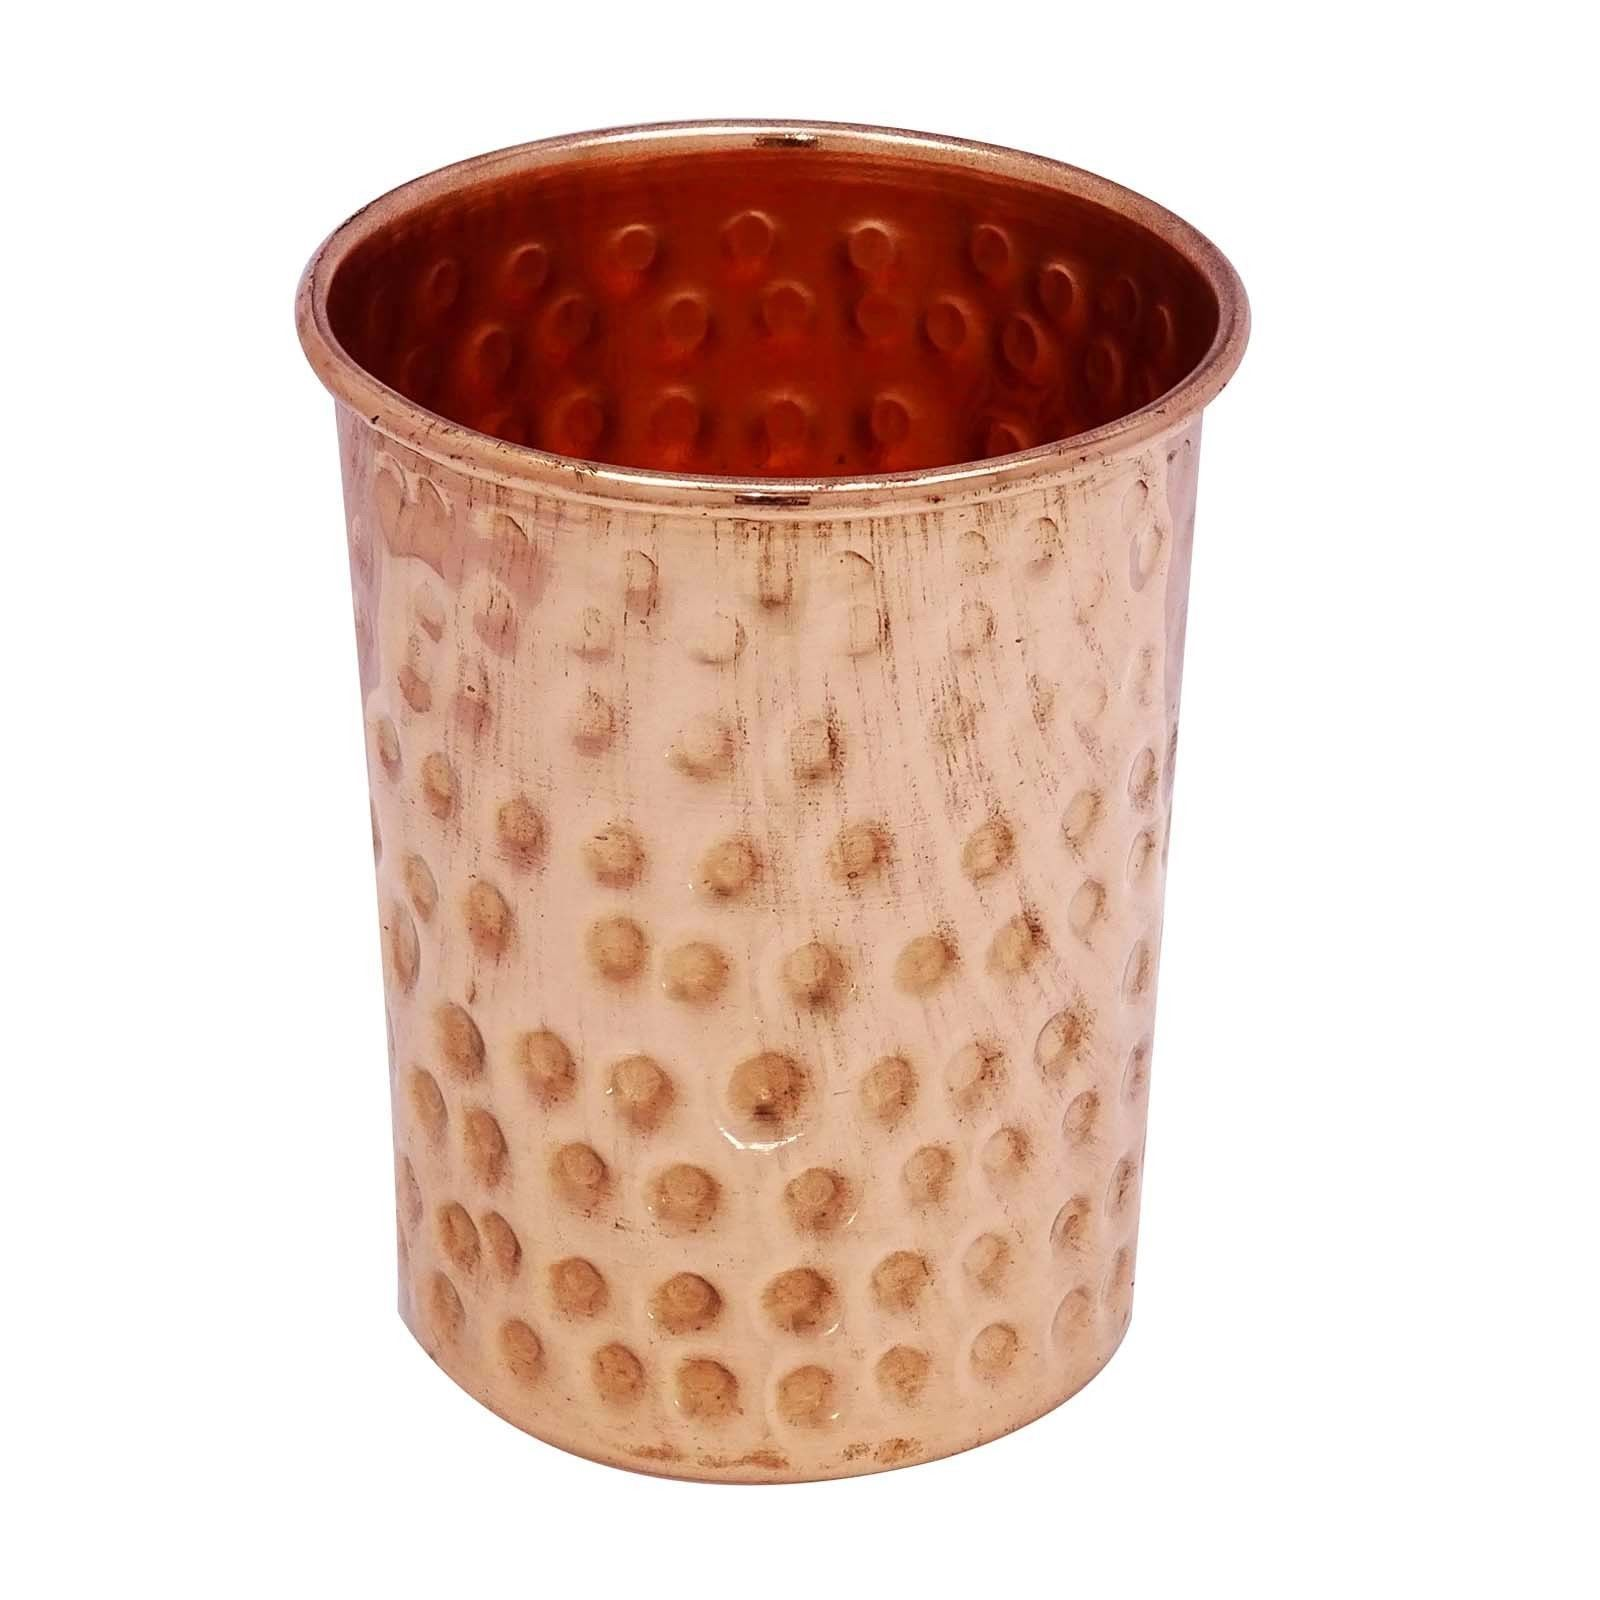 Traditional Hammered Copper Glass Tumbler Tableware Drinkware Glassware05